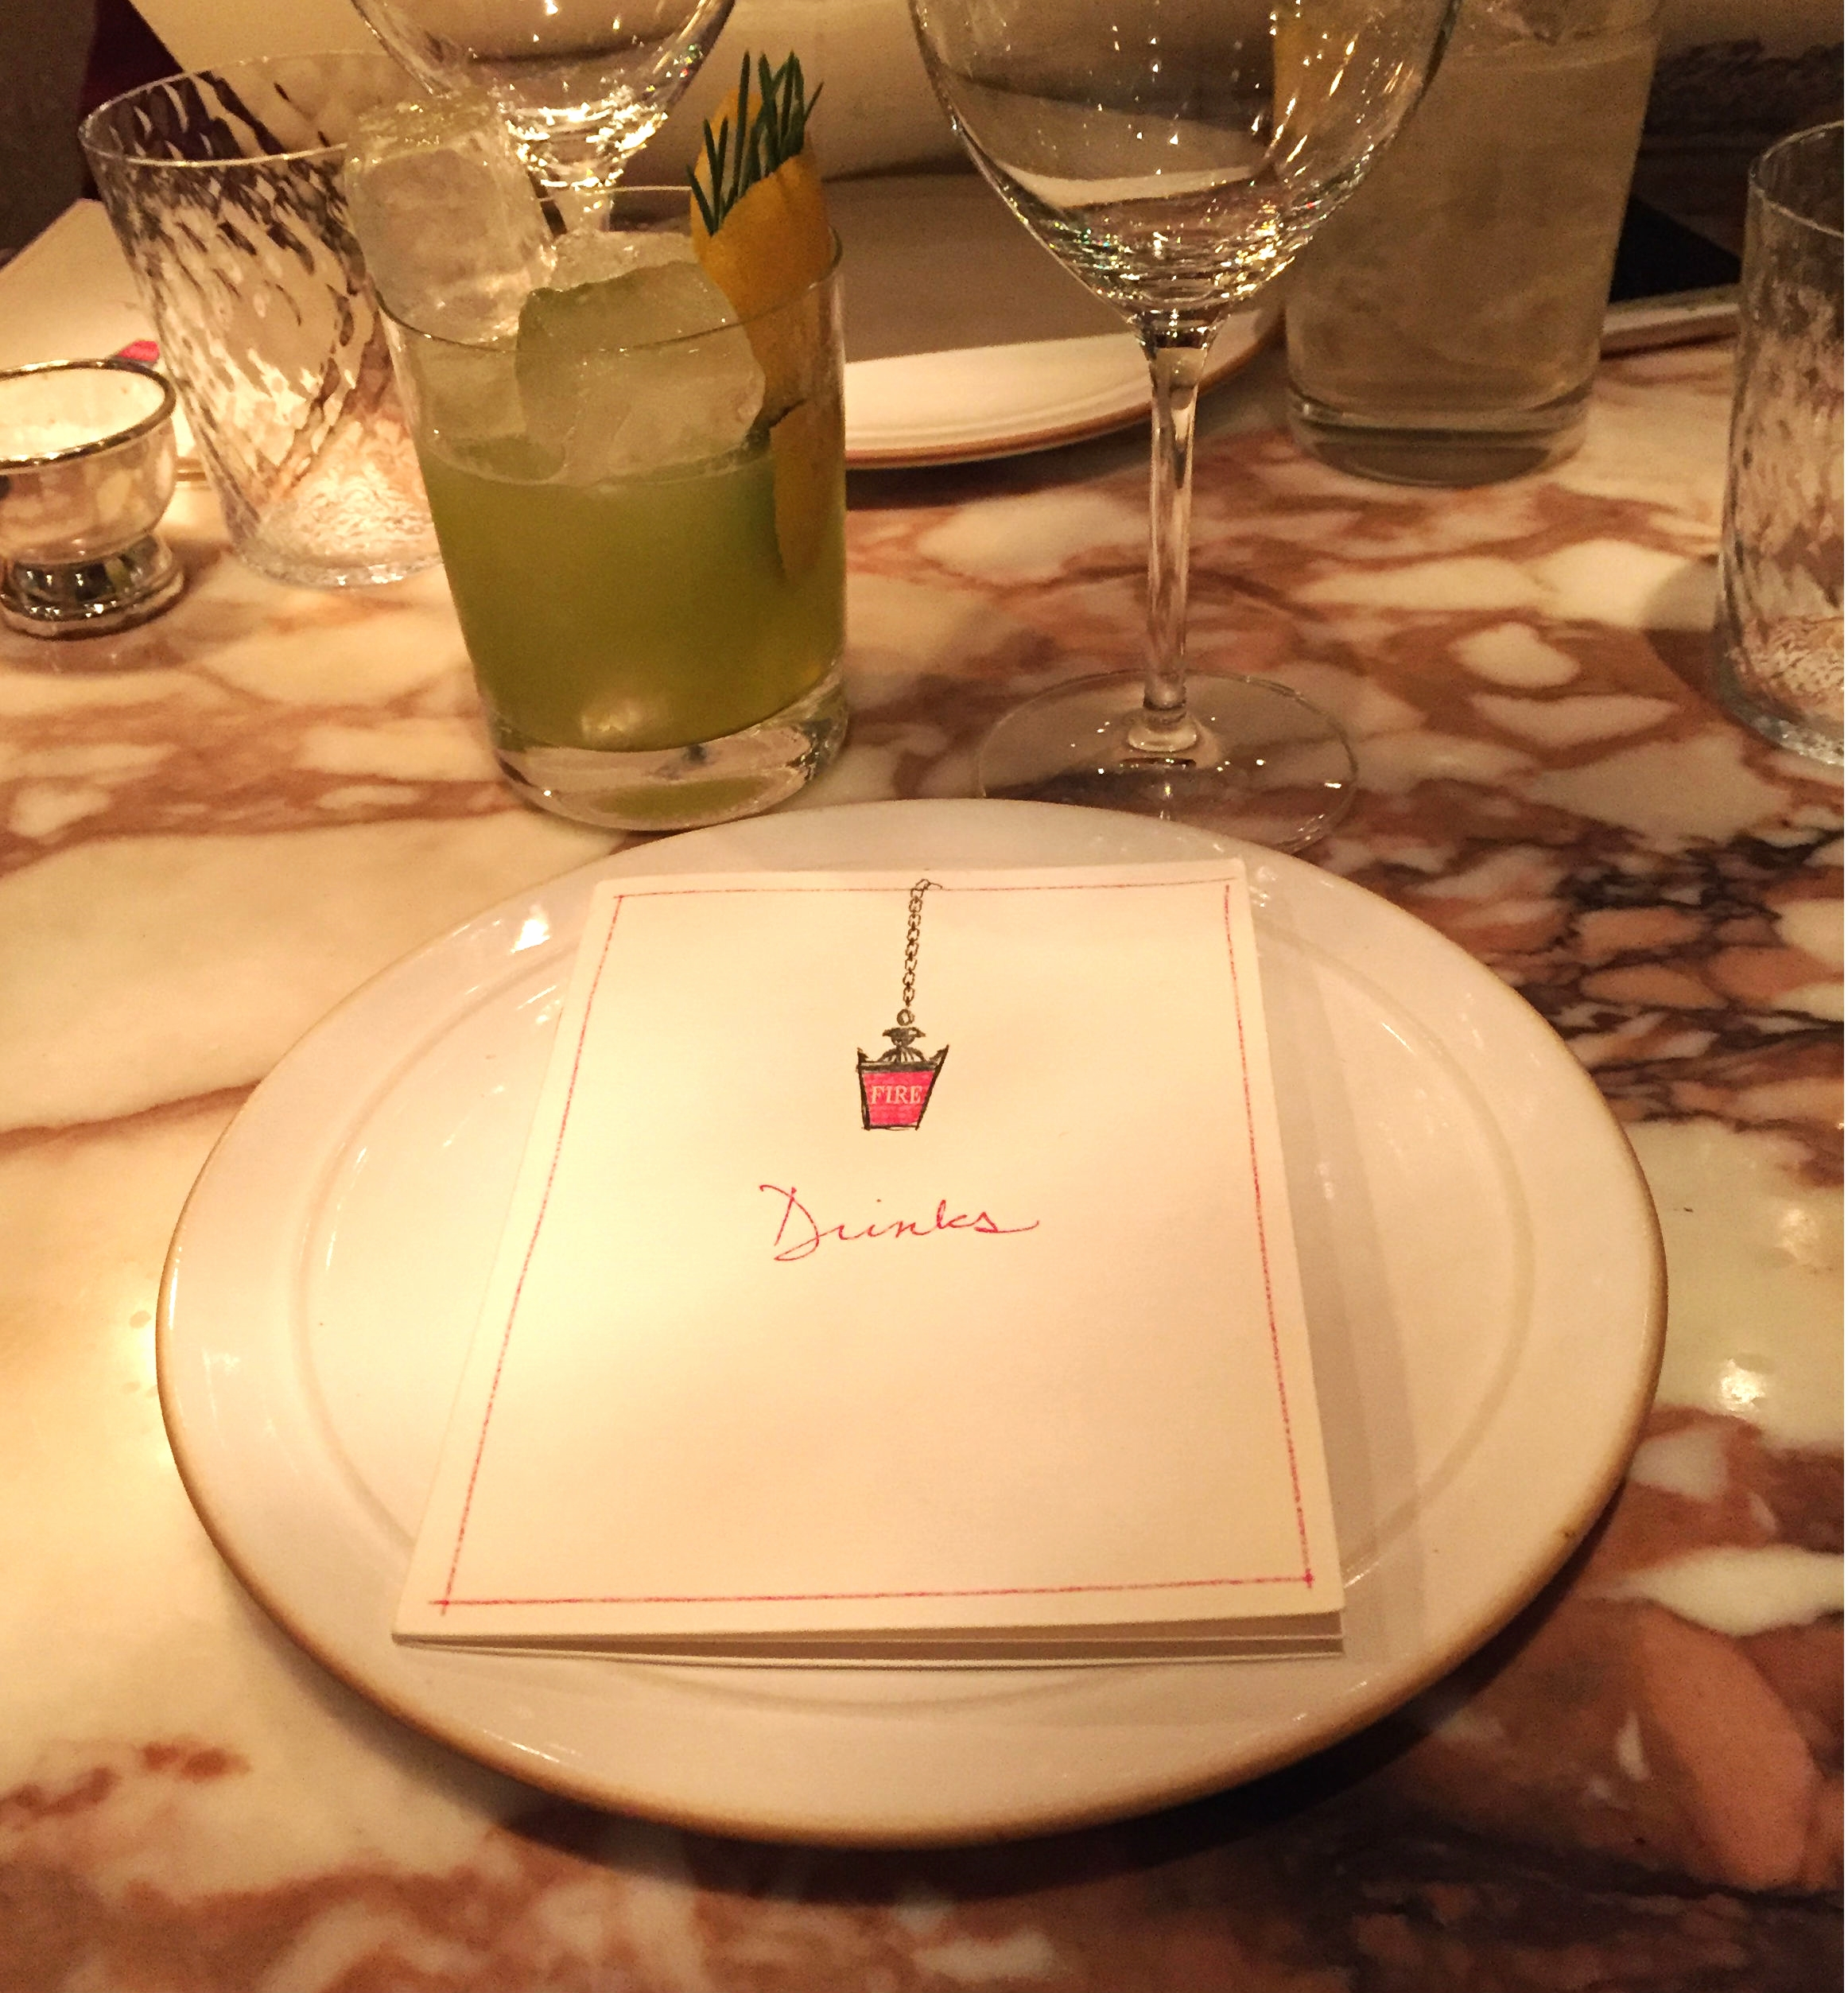 Chiltern Firehouse drinks menu - restaurant review